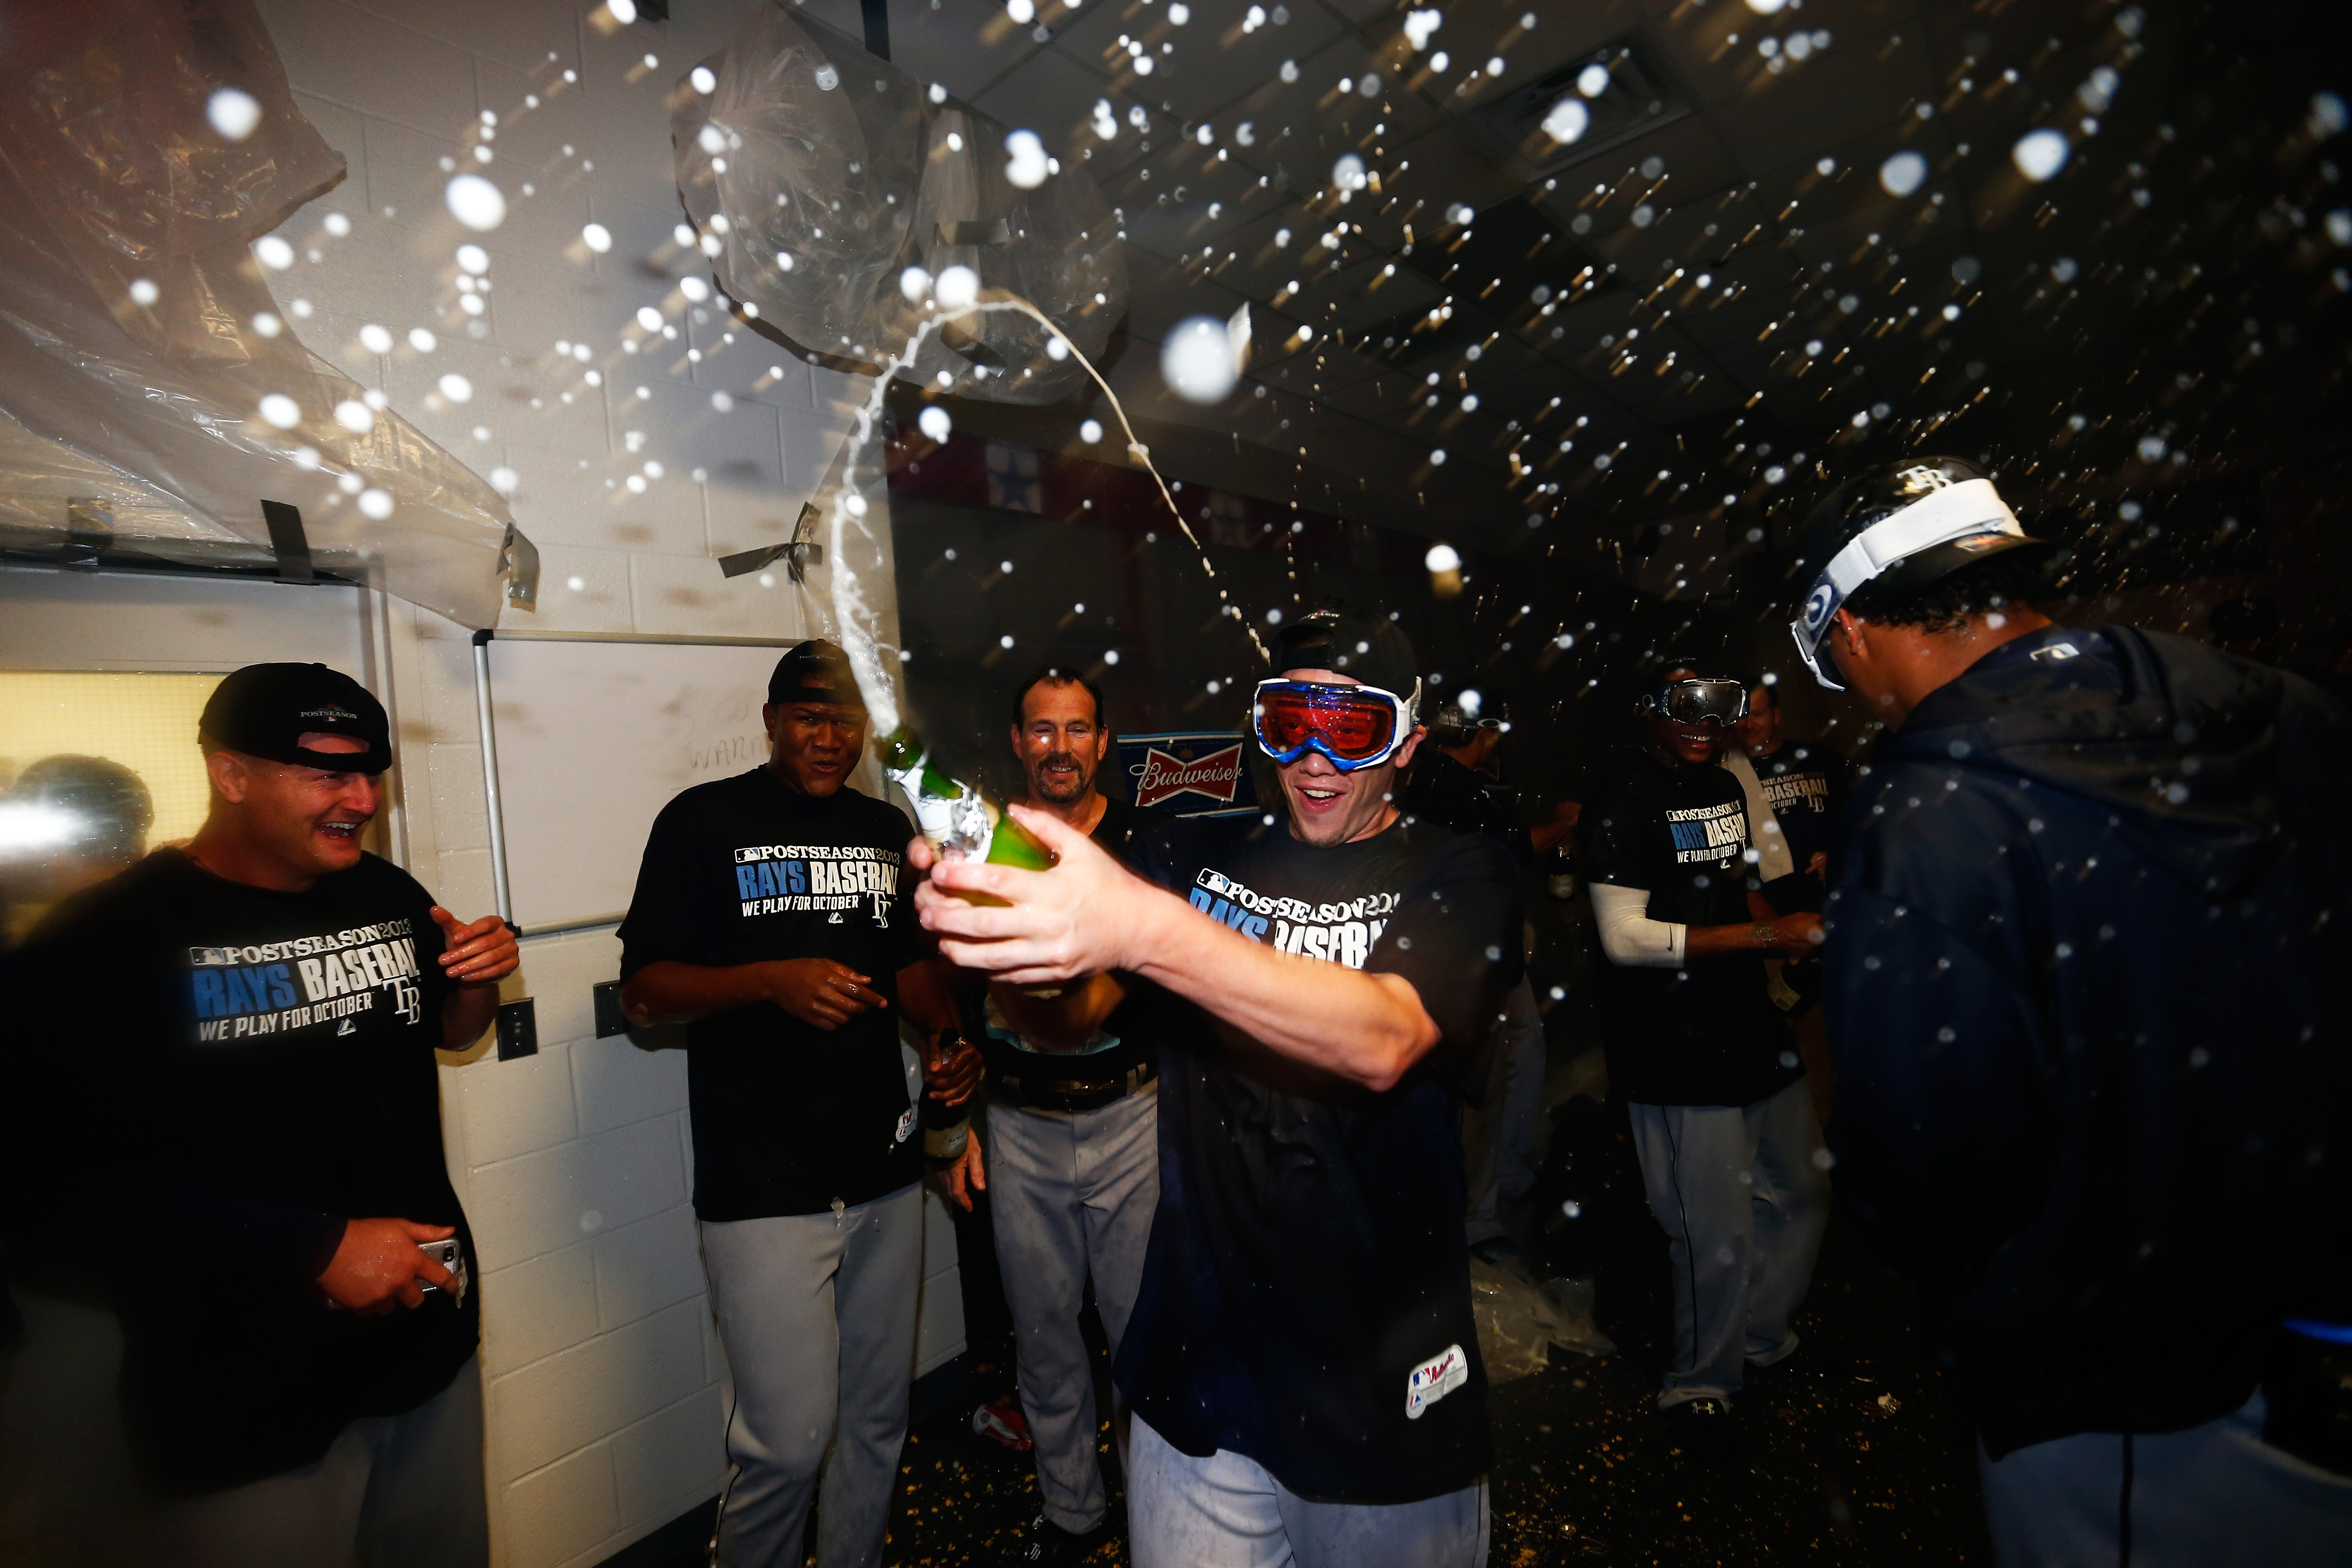 Rays, champagne